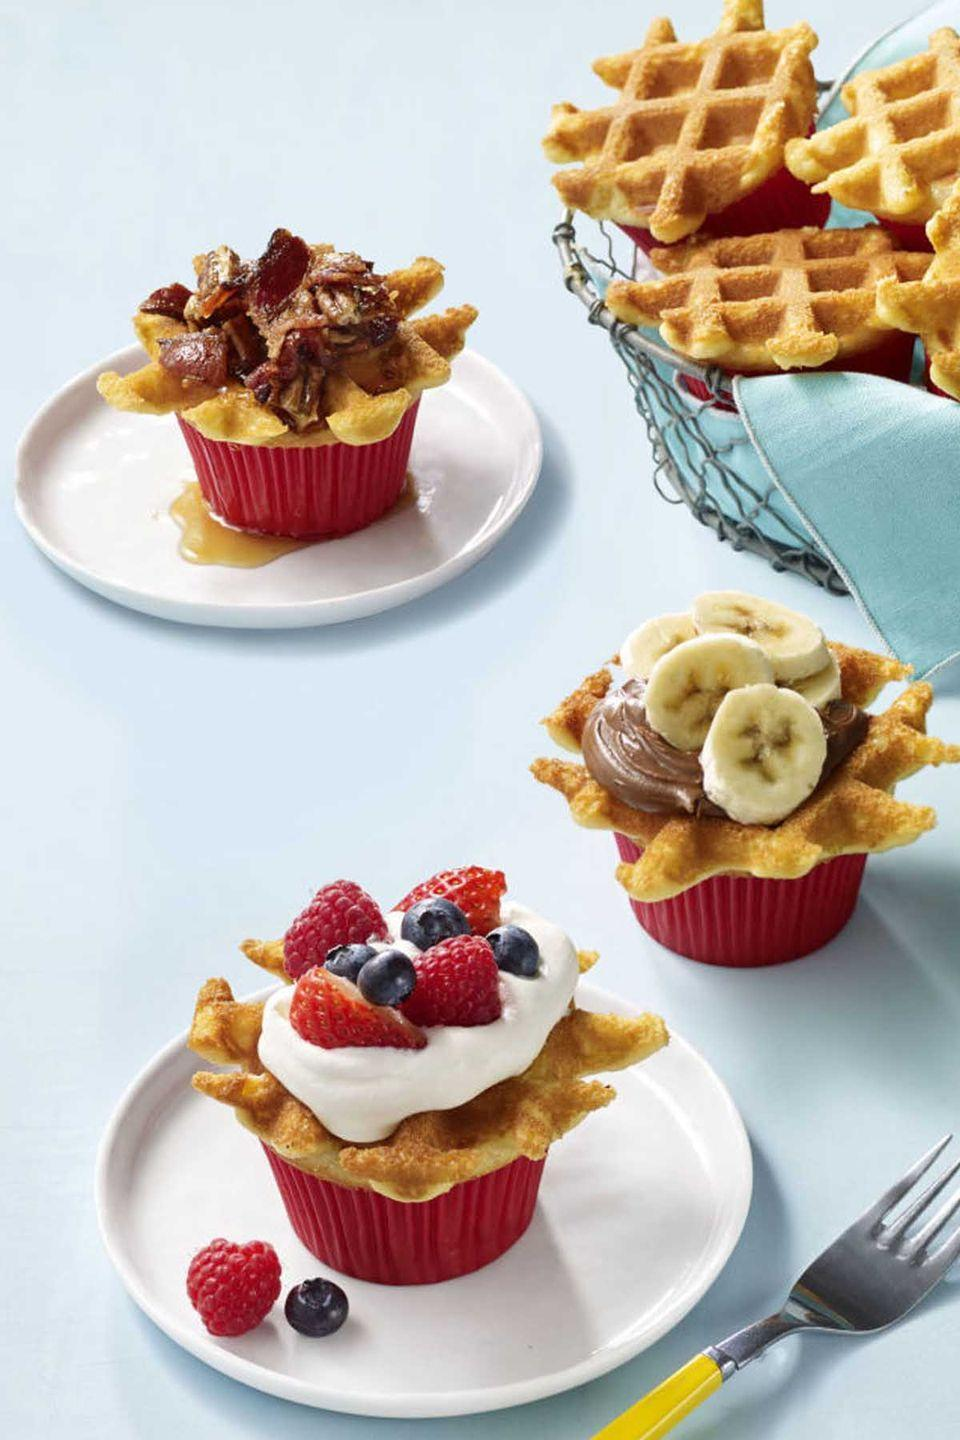 """<p>Who said waffles can't be snacks? These tiny waffle-cupcake hybrids can be topped with any fruit you have in the fridge and yogurt for a healthy snack.</p><p><em><a href=""""https://www.womansday.com/food-recipes/food-drinks/recipes/a57925/wafflecakes-recipe/"""" rel=""""nofollow noopener"""" target=""""_blank"""" data-ylk=""""slk:Get the Wafflecakes recipe."""" class=""""link rapid-noclick-resp"""">Get the Wafflecakes recipe.</a></em></p>"""